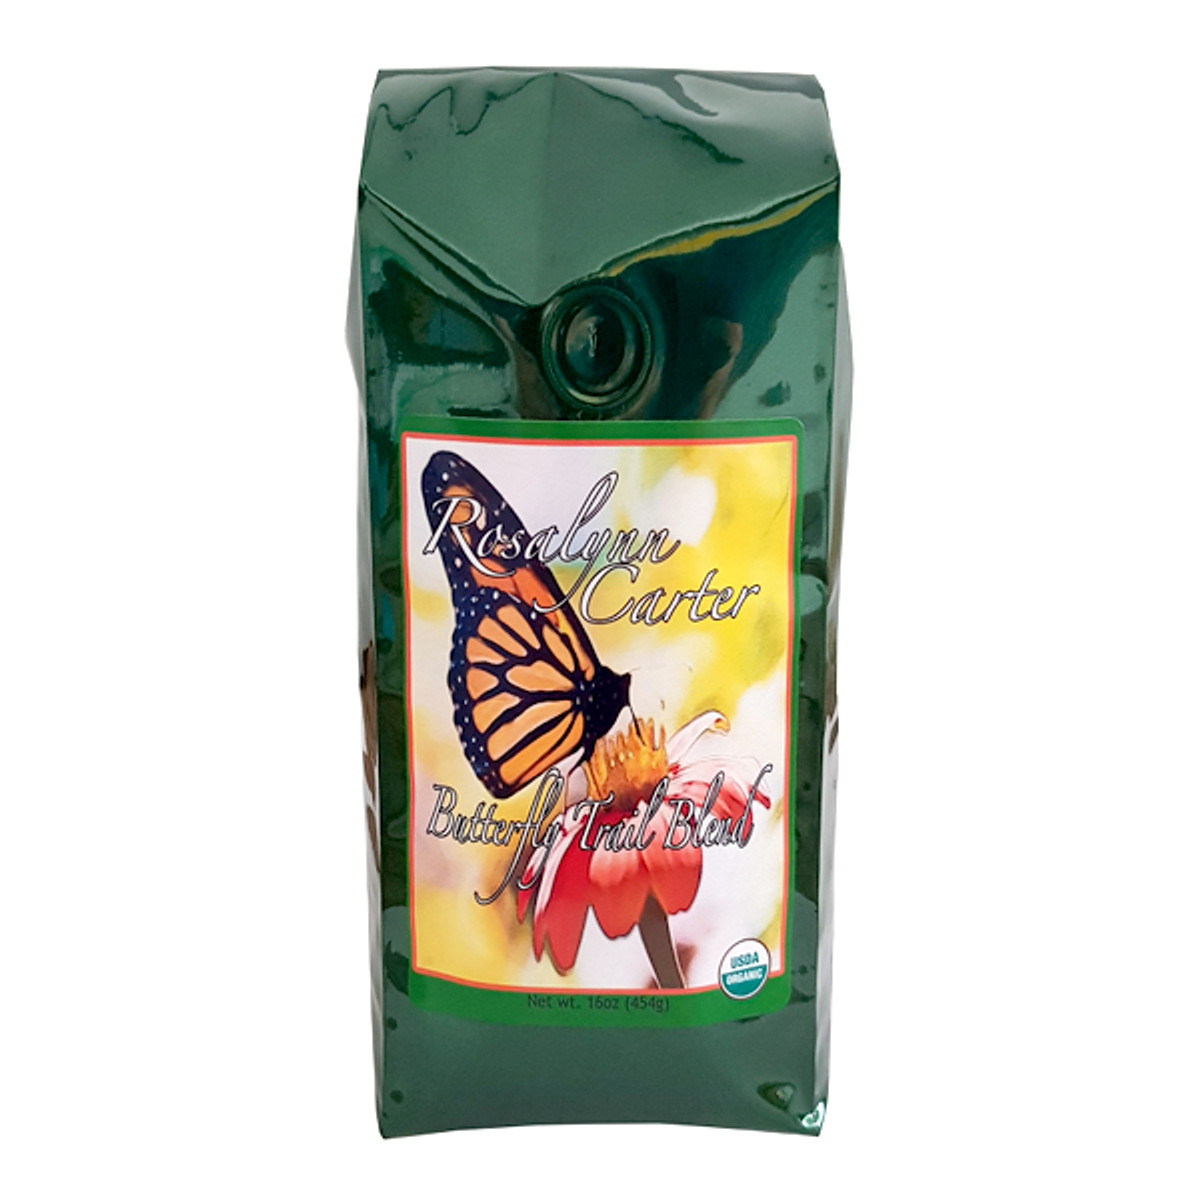 A blend of Colombia Medium, Sumatra Viennese, and Nicaragua Medium Roasts created in honor of the Rosalynn Carter Butterfly Trail